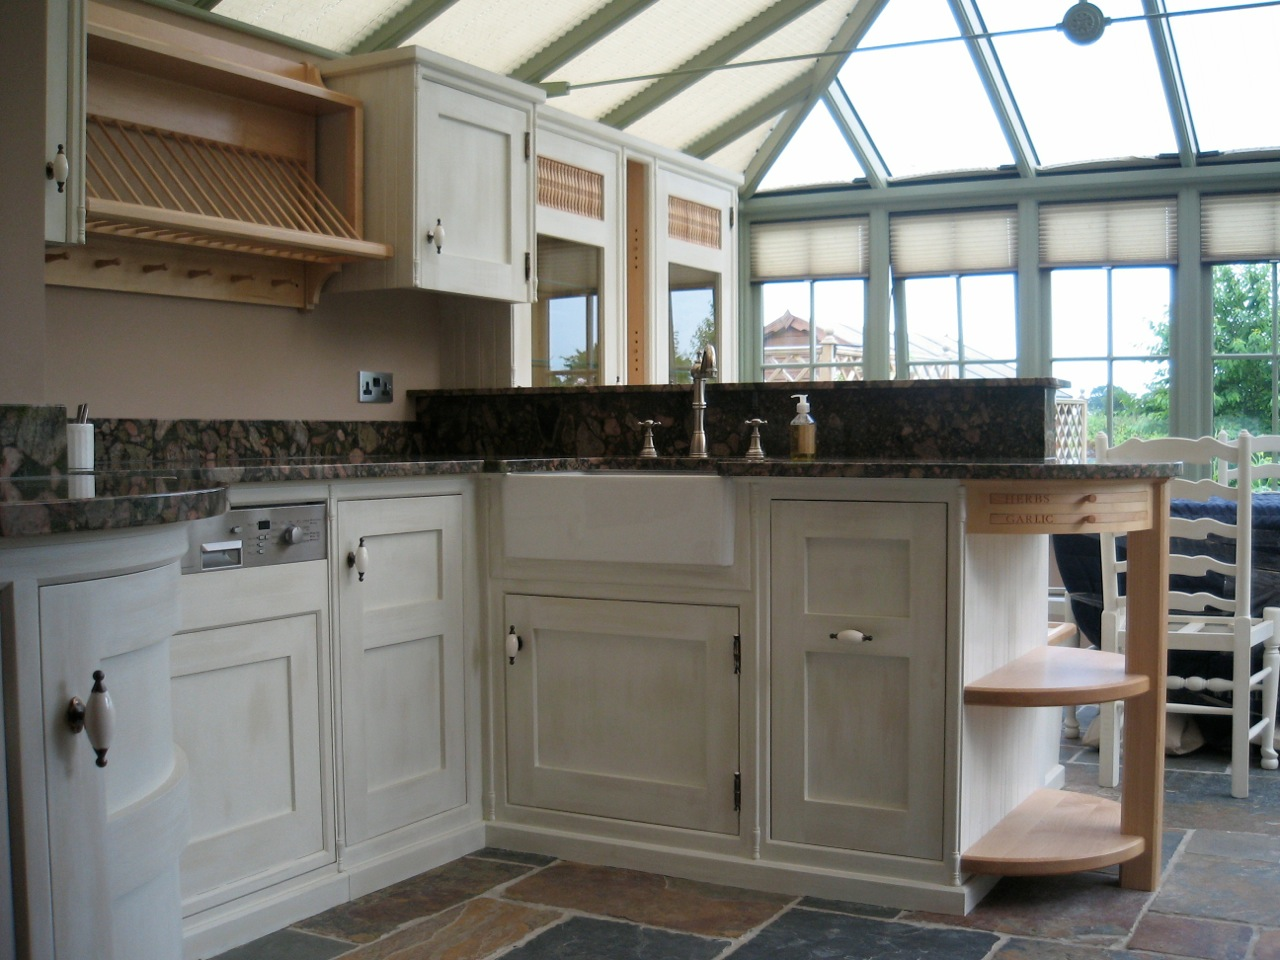 Bespoke Kitchens Paint Effects On Bespoke Kitchens And Furniture